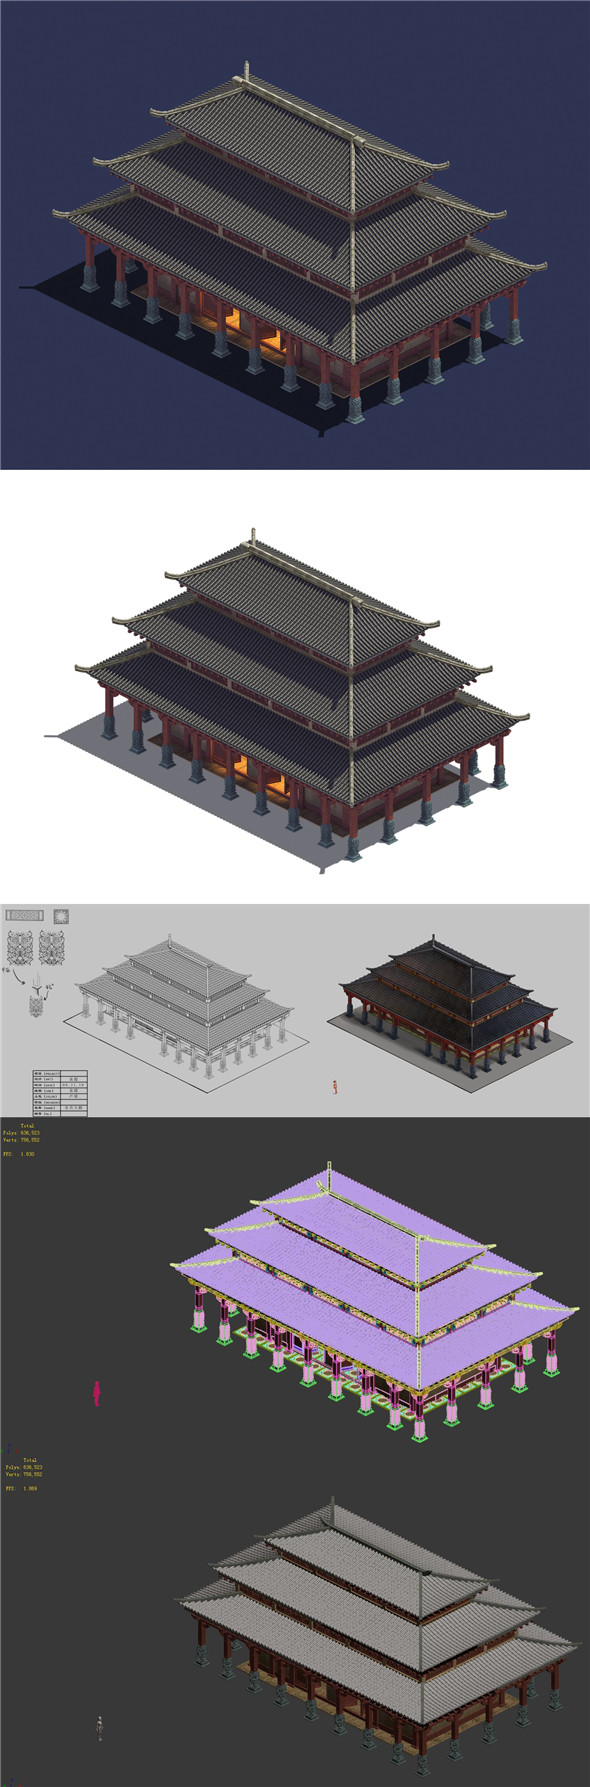 China - Palace Basilica - 3DOcean Item for Sale